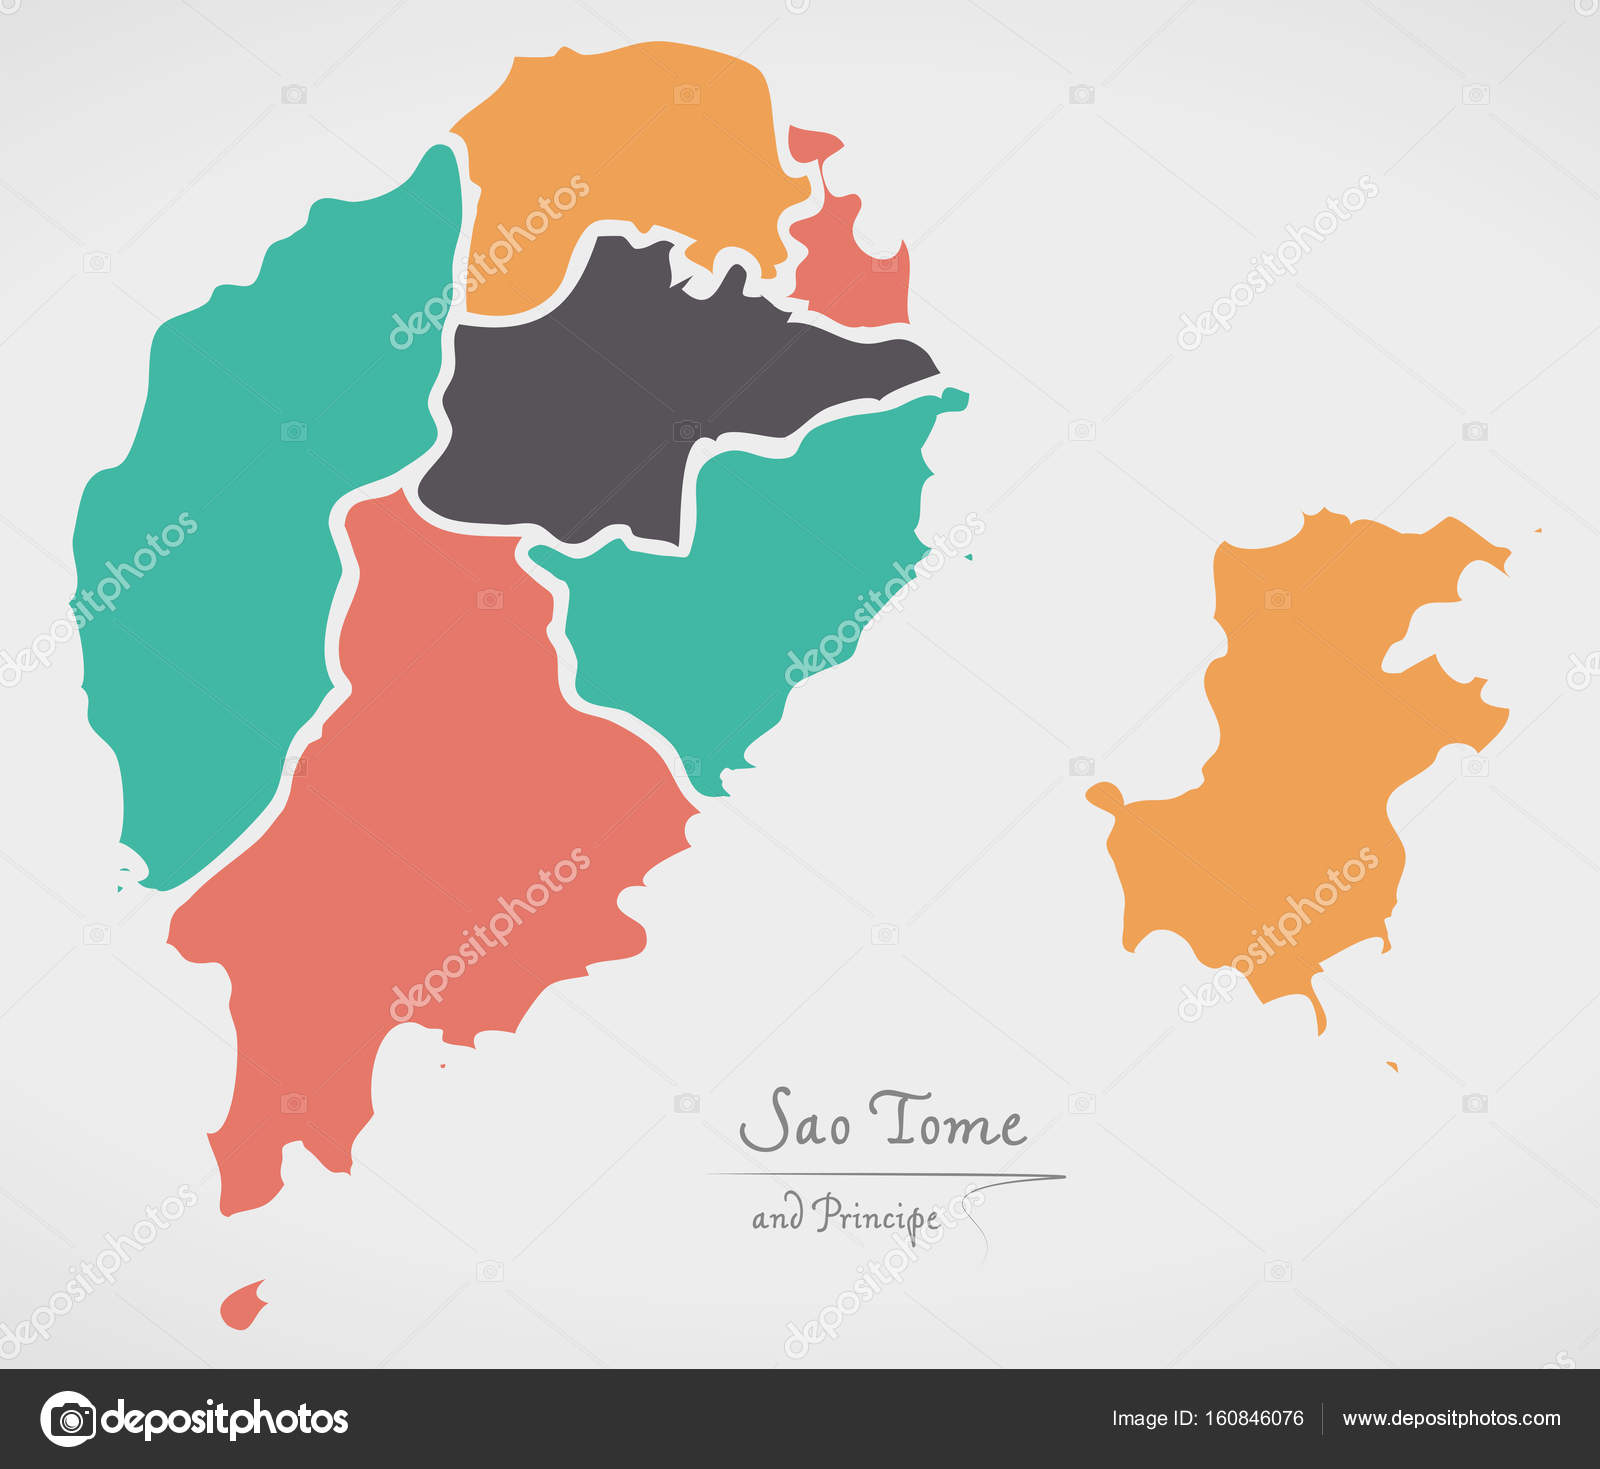 Sao Tome And Principe Map With States And Modern Round Shapes